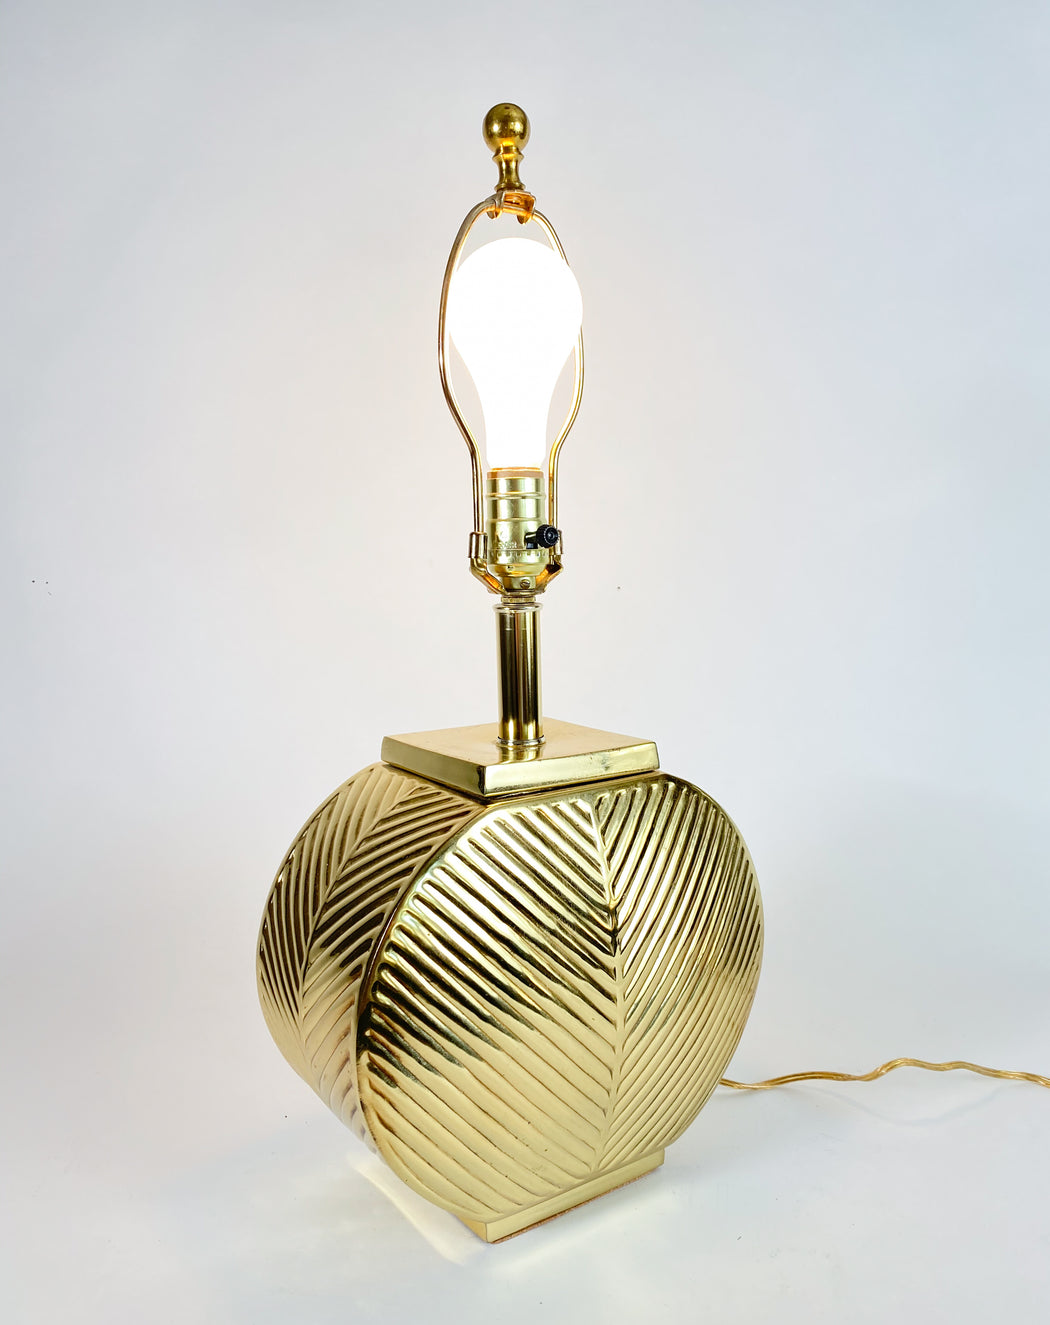 Vintage Brass Table Lamp | 1980s Gold Decor